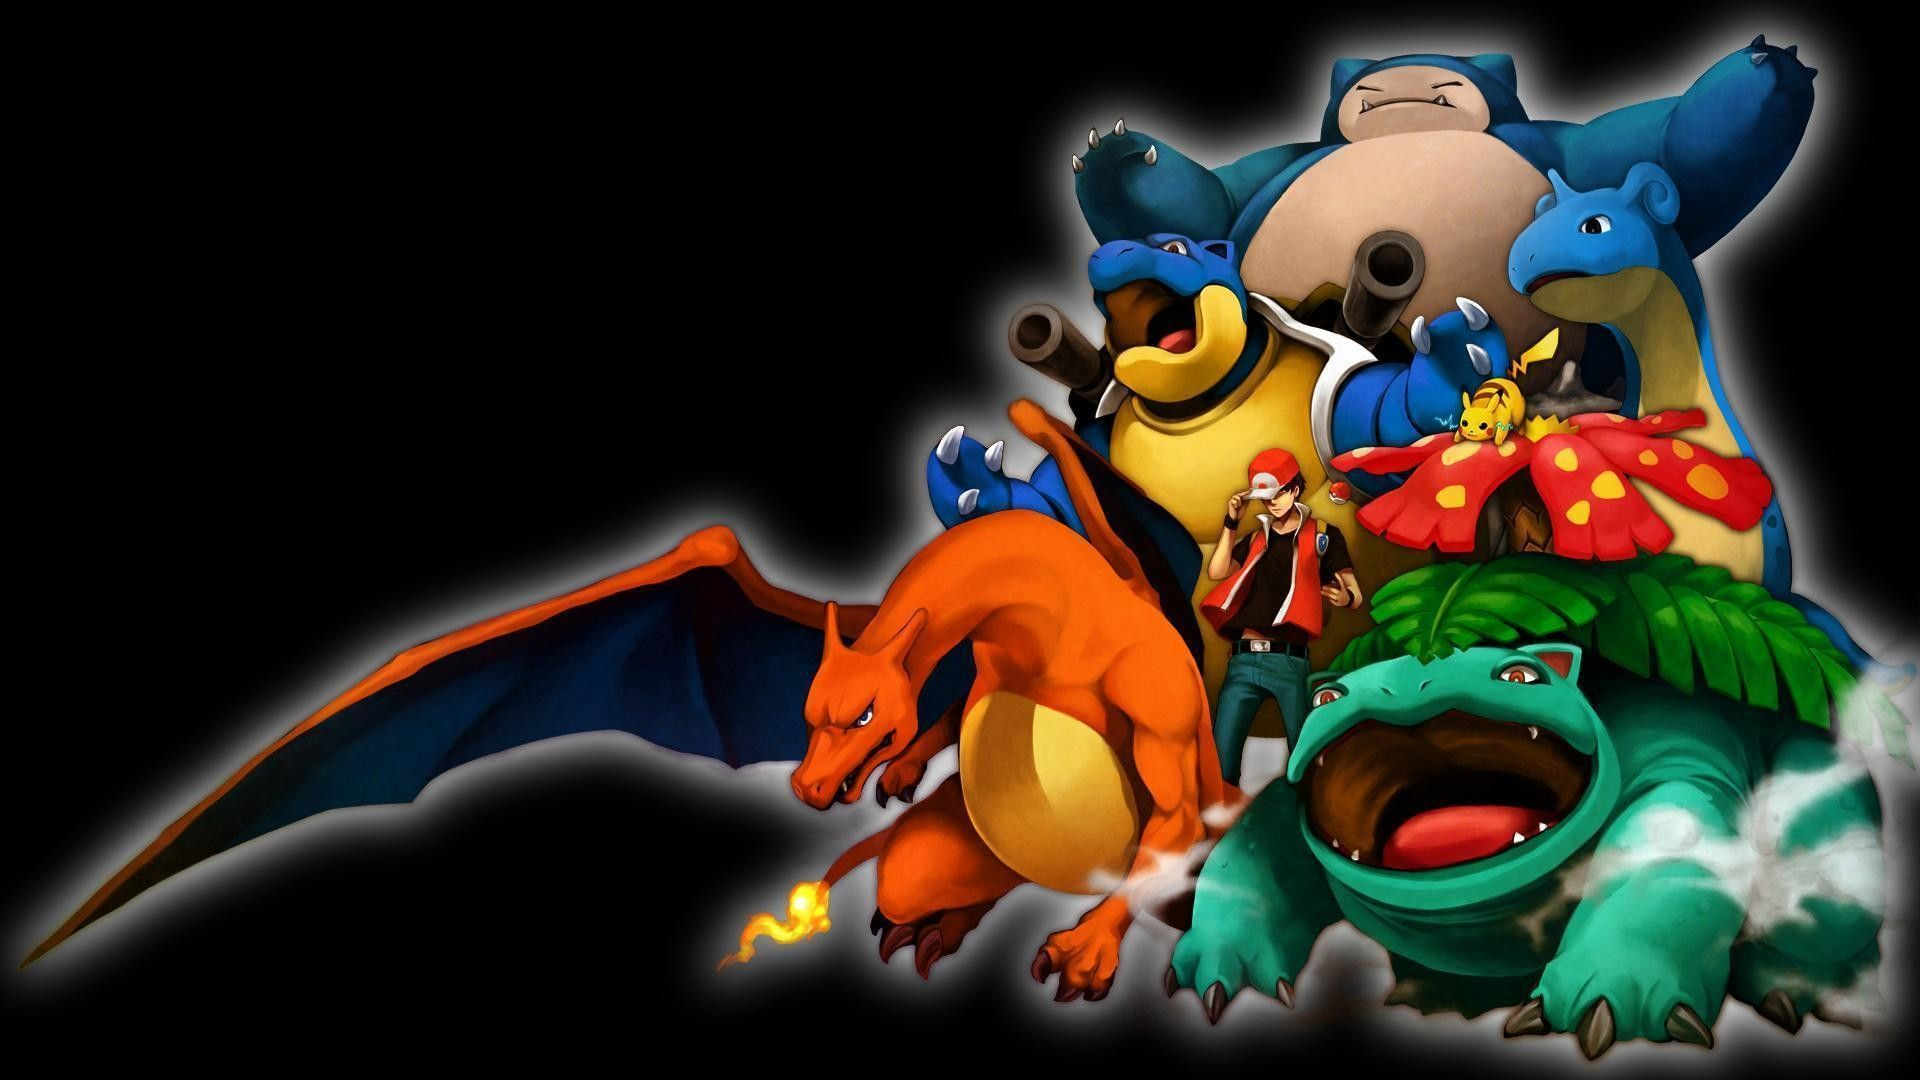 Wallpaper Hd Pokemon X Y Charizard Pokemon Pokemon Personajes